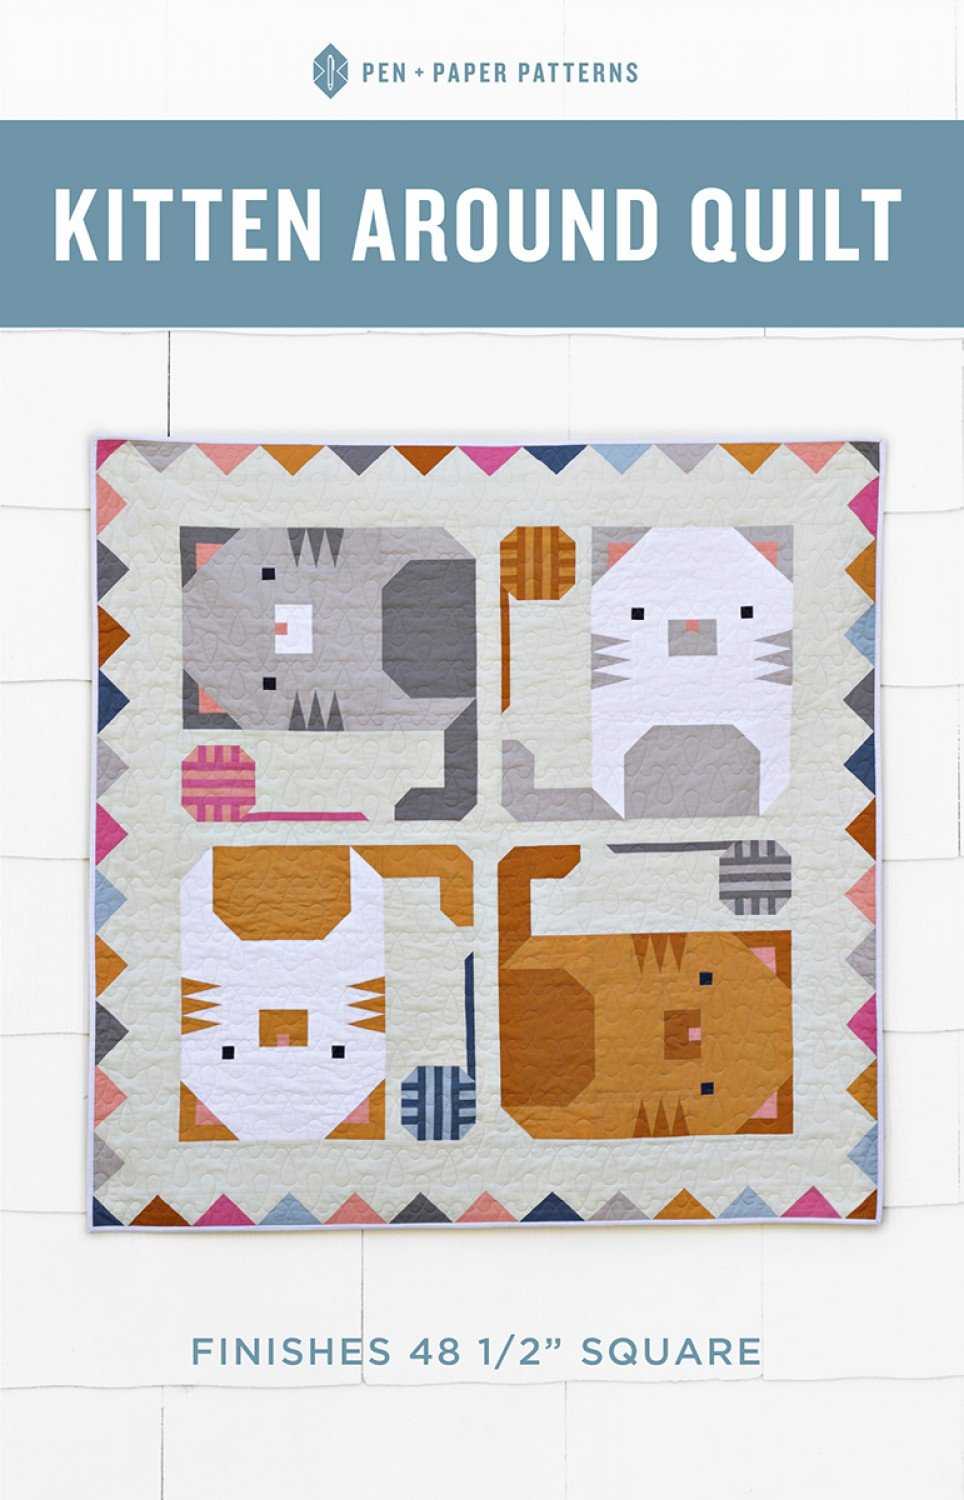 Kitten Around Quilt by Pen and Paper